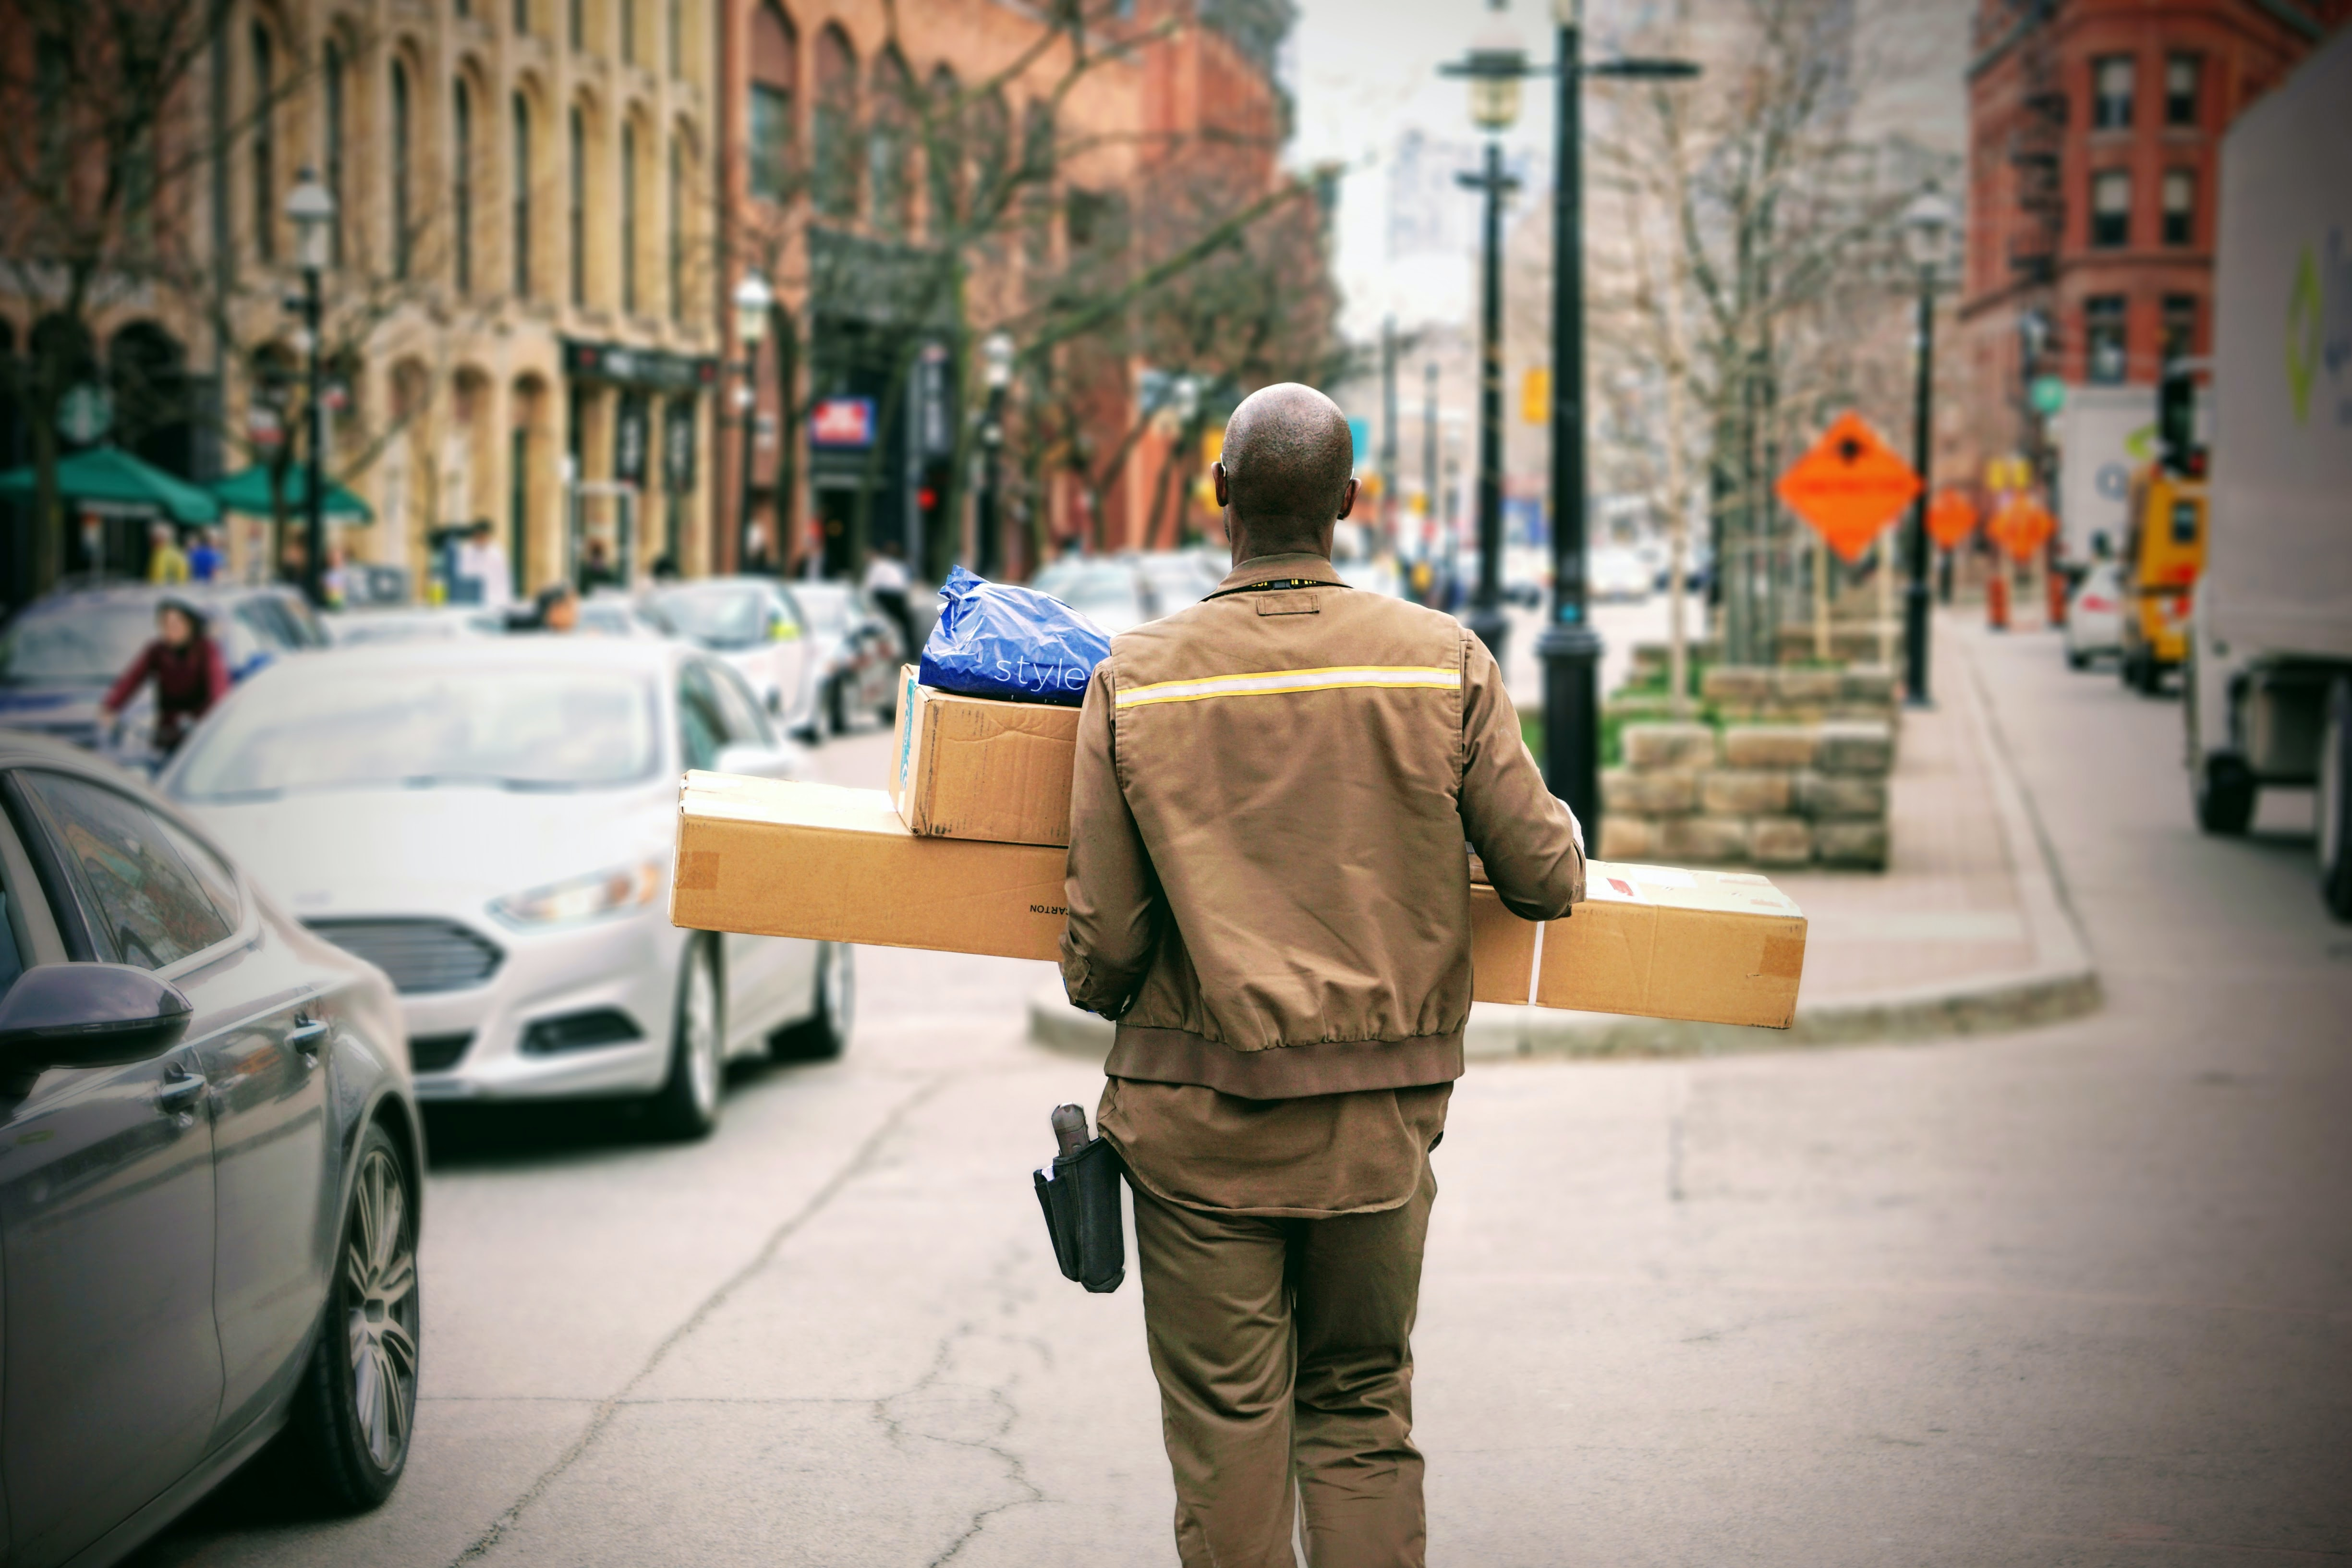 A bald man in uniform is carrying parcels next to a busy street in St. Lawrence Market.